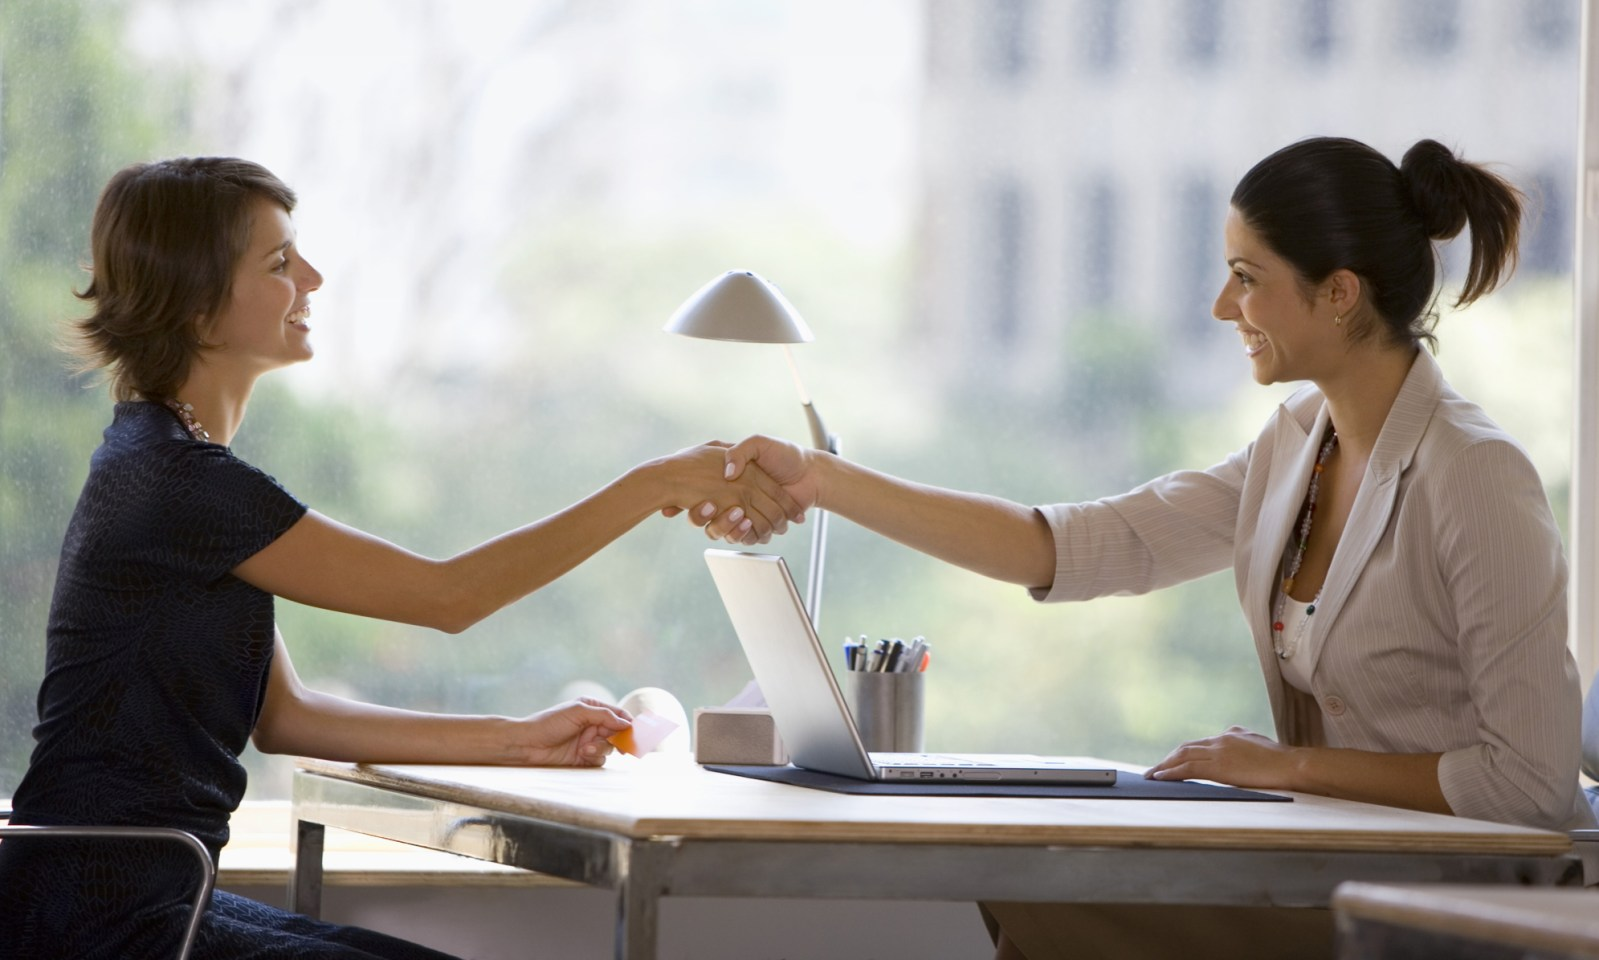 5 Things You Should Do in a Job Interview